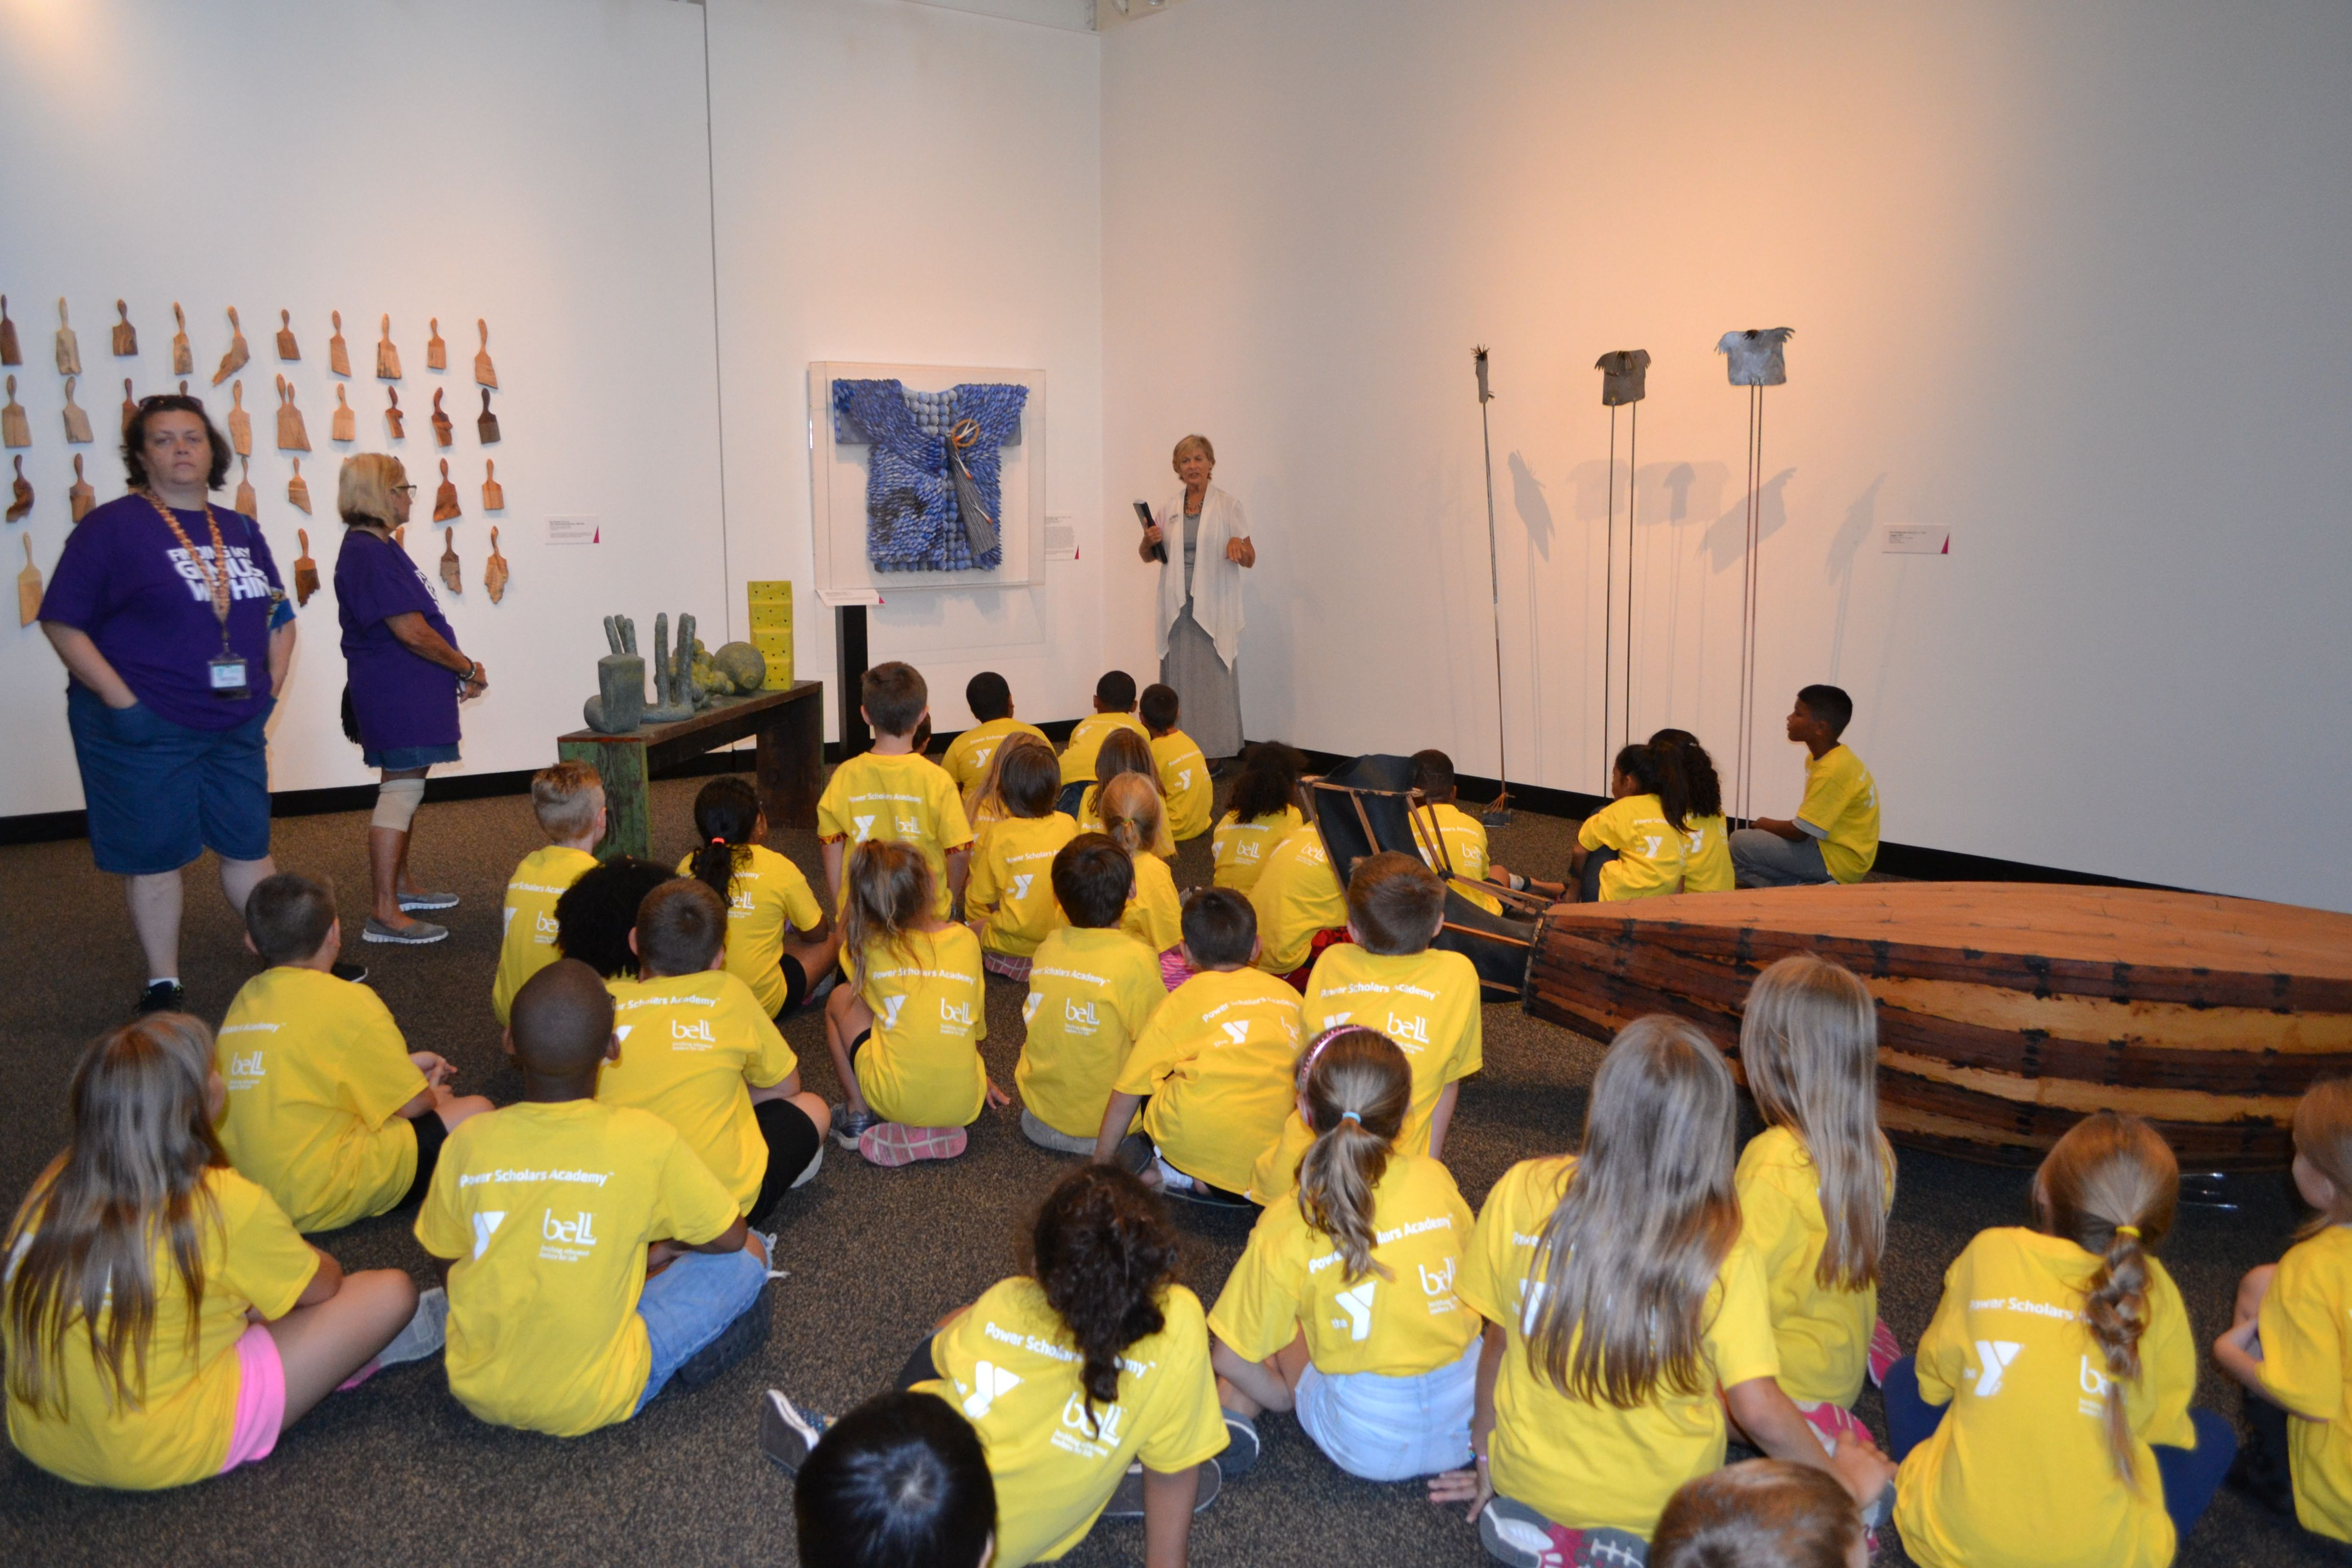 Lrma provides art tours for school groups and summer camps